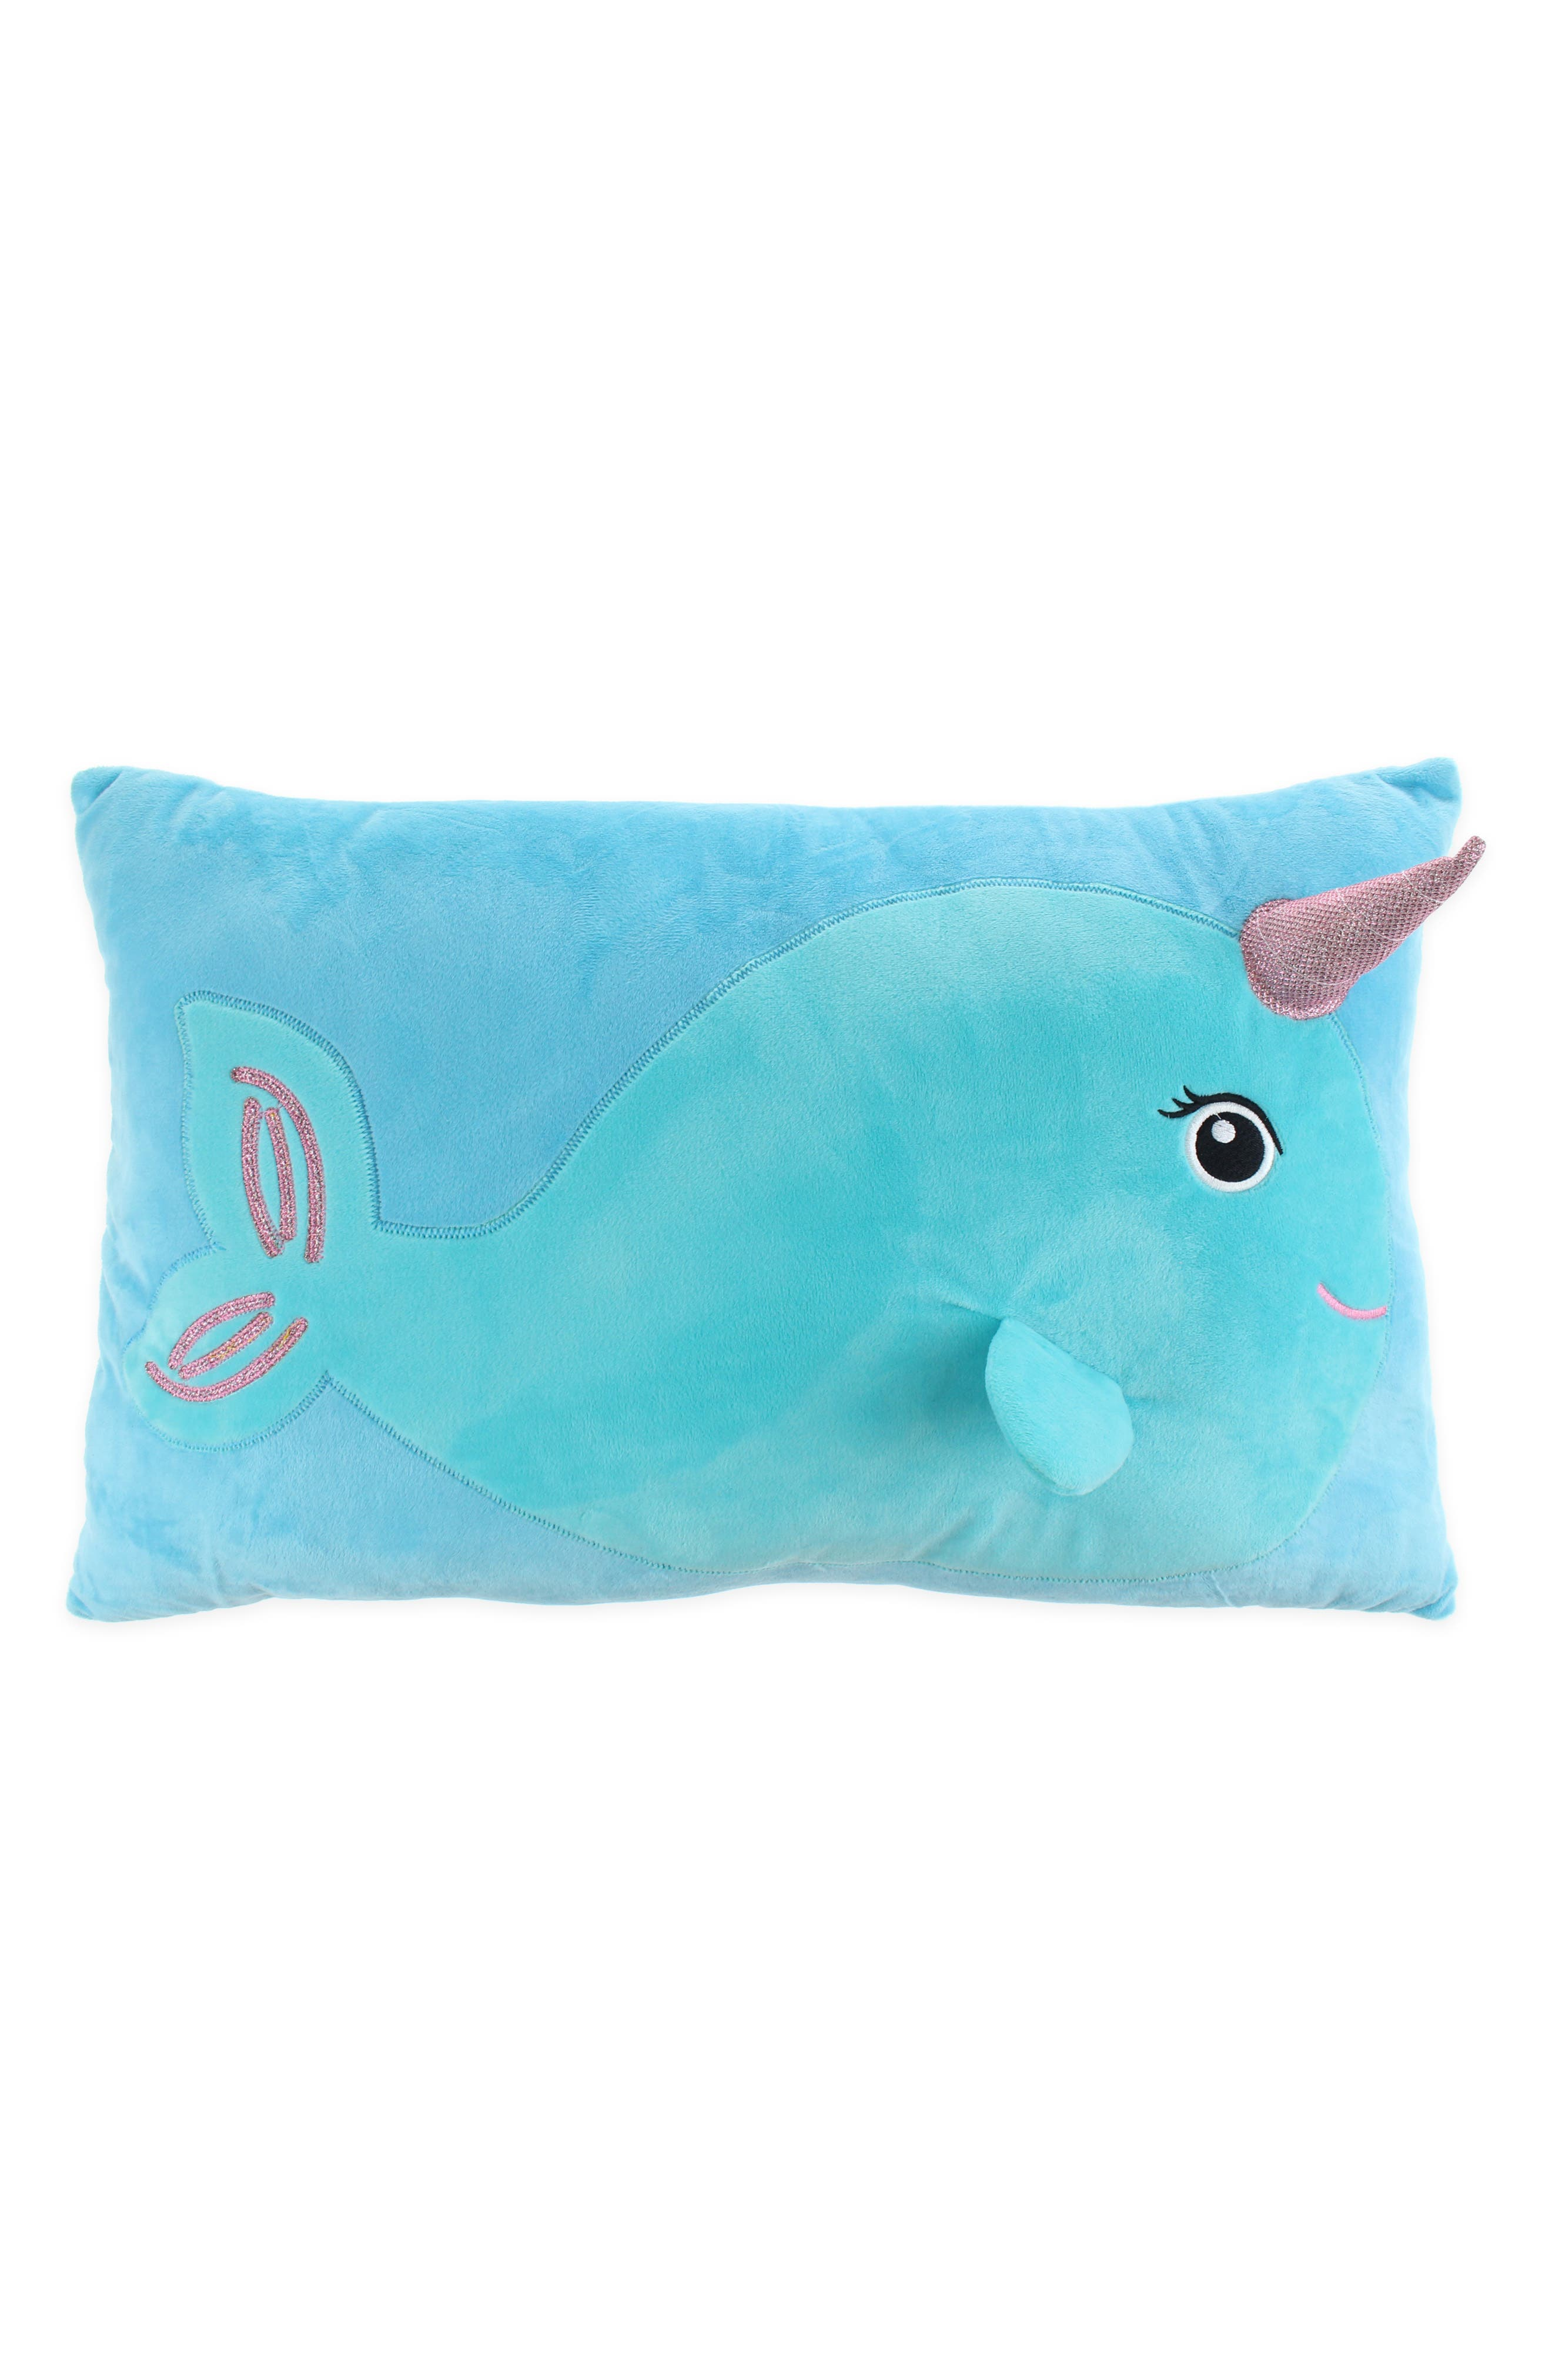 Narwhal Throw Pillow,                         Main,                         color, BLUE COMBO